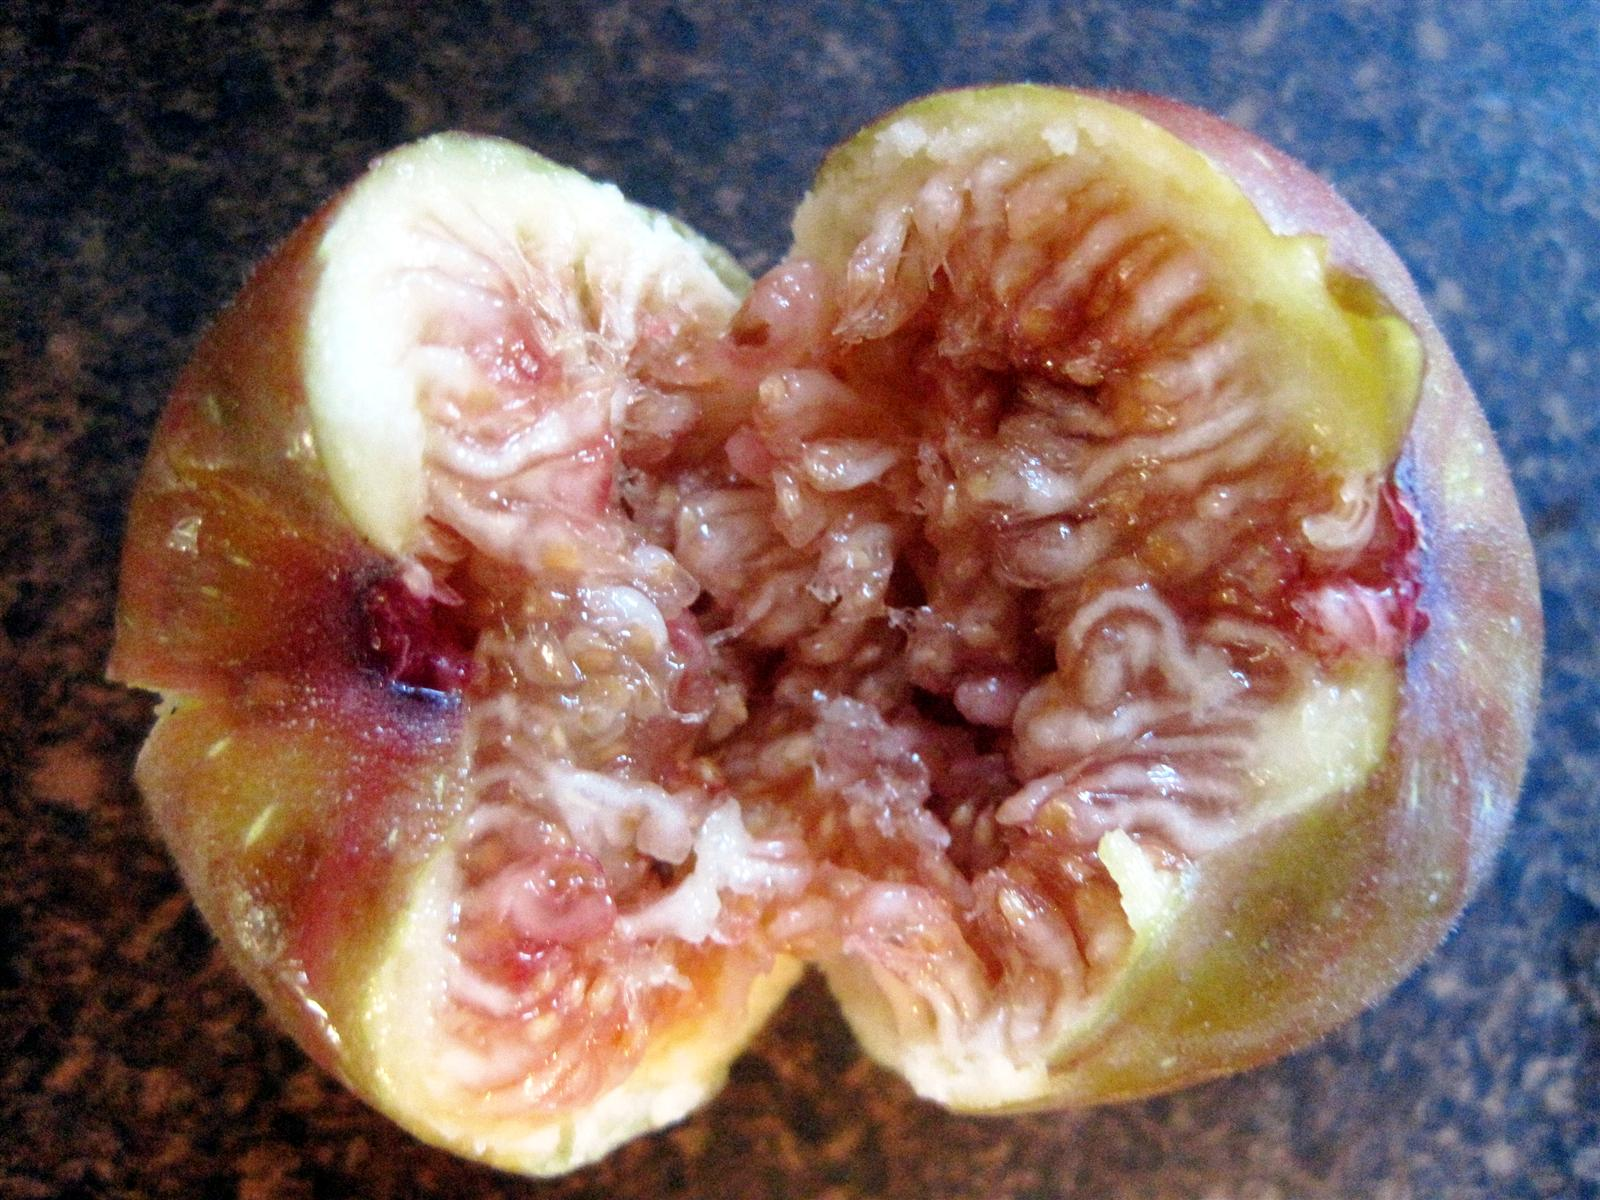 how to look after figs